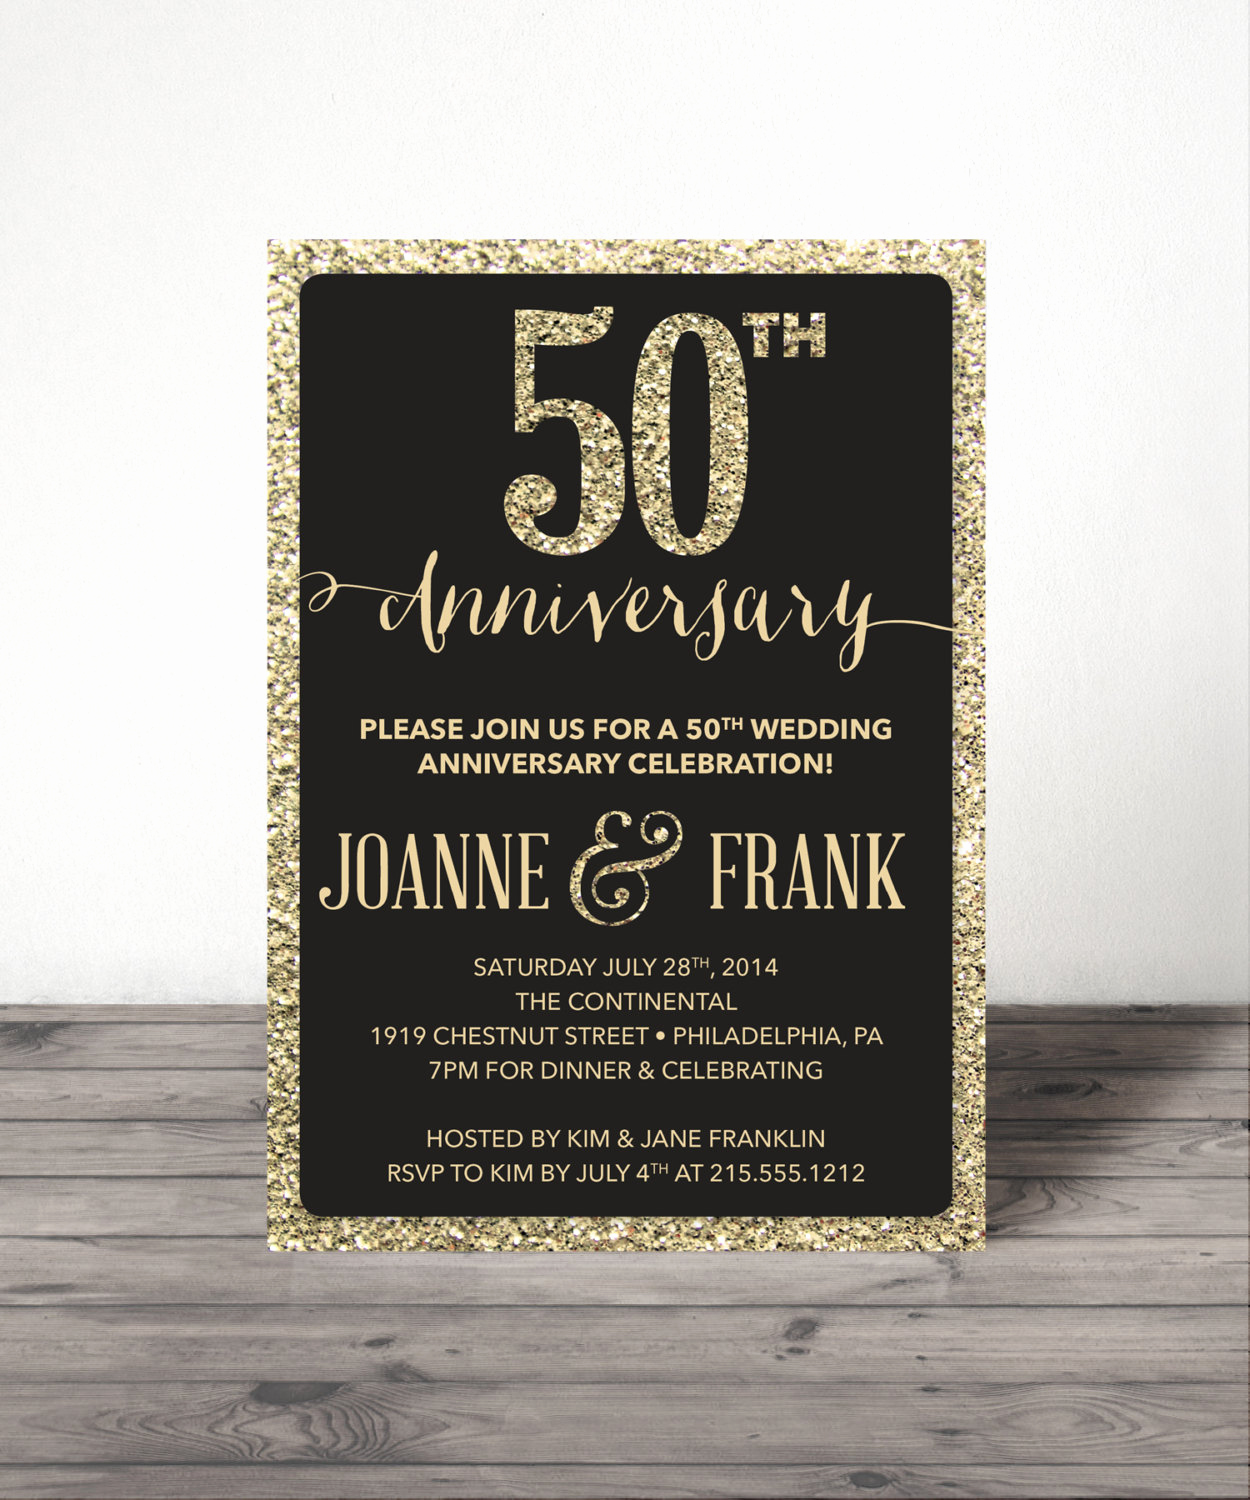 40th Anniversary Invitation Wording Best Of Wedding Anniversary Invite 25th 30th 40th by